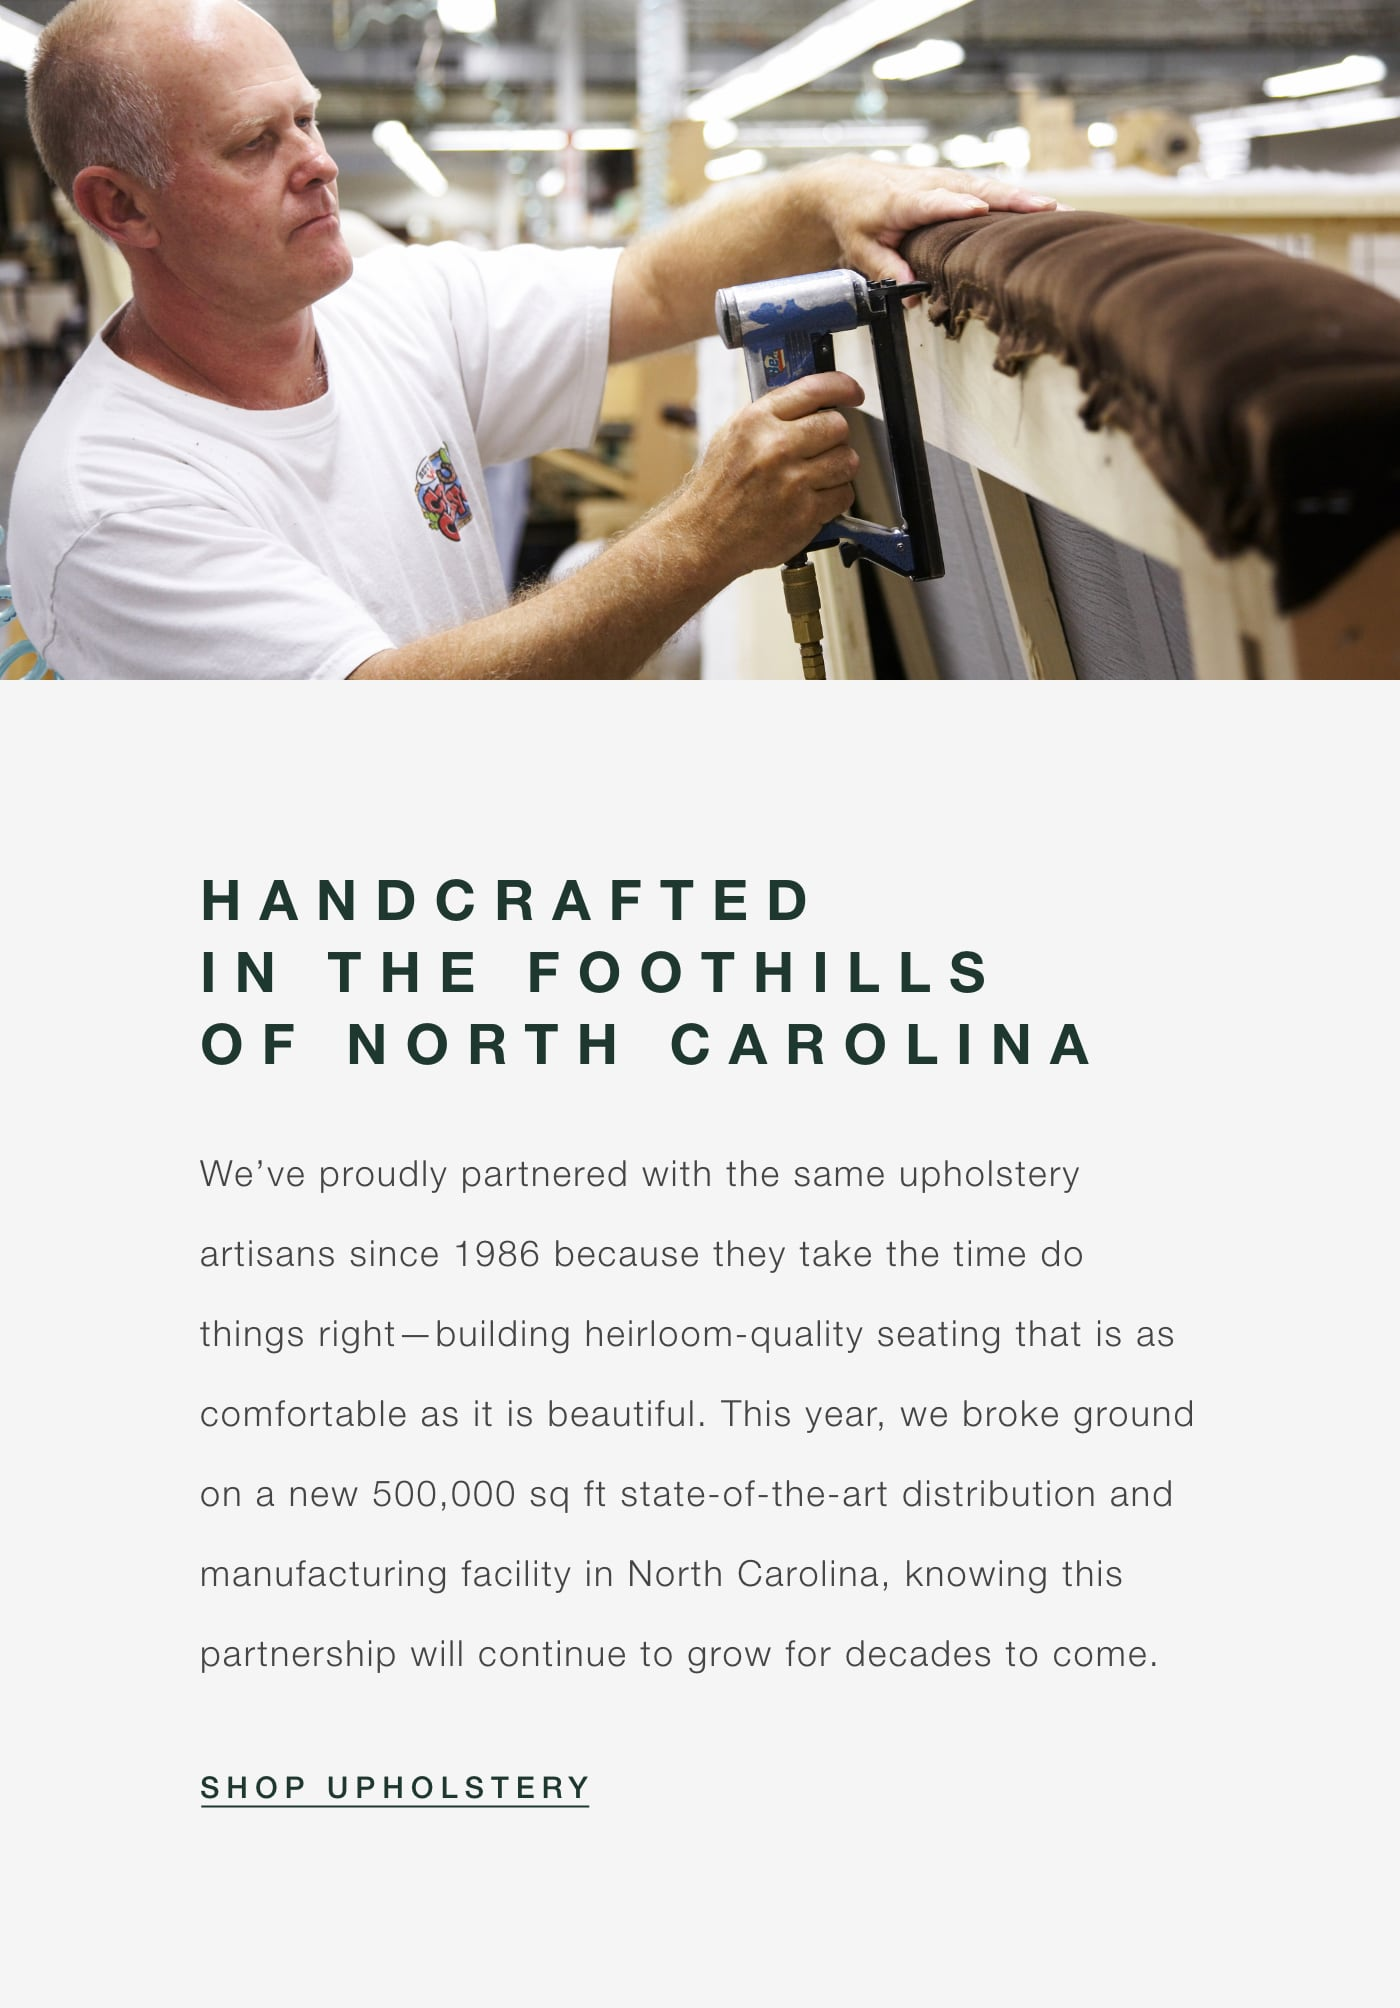 Our Upholstery is Crafted in the Foothills of North Carolina